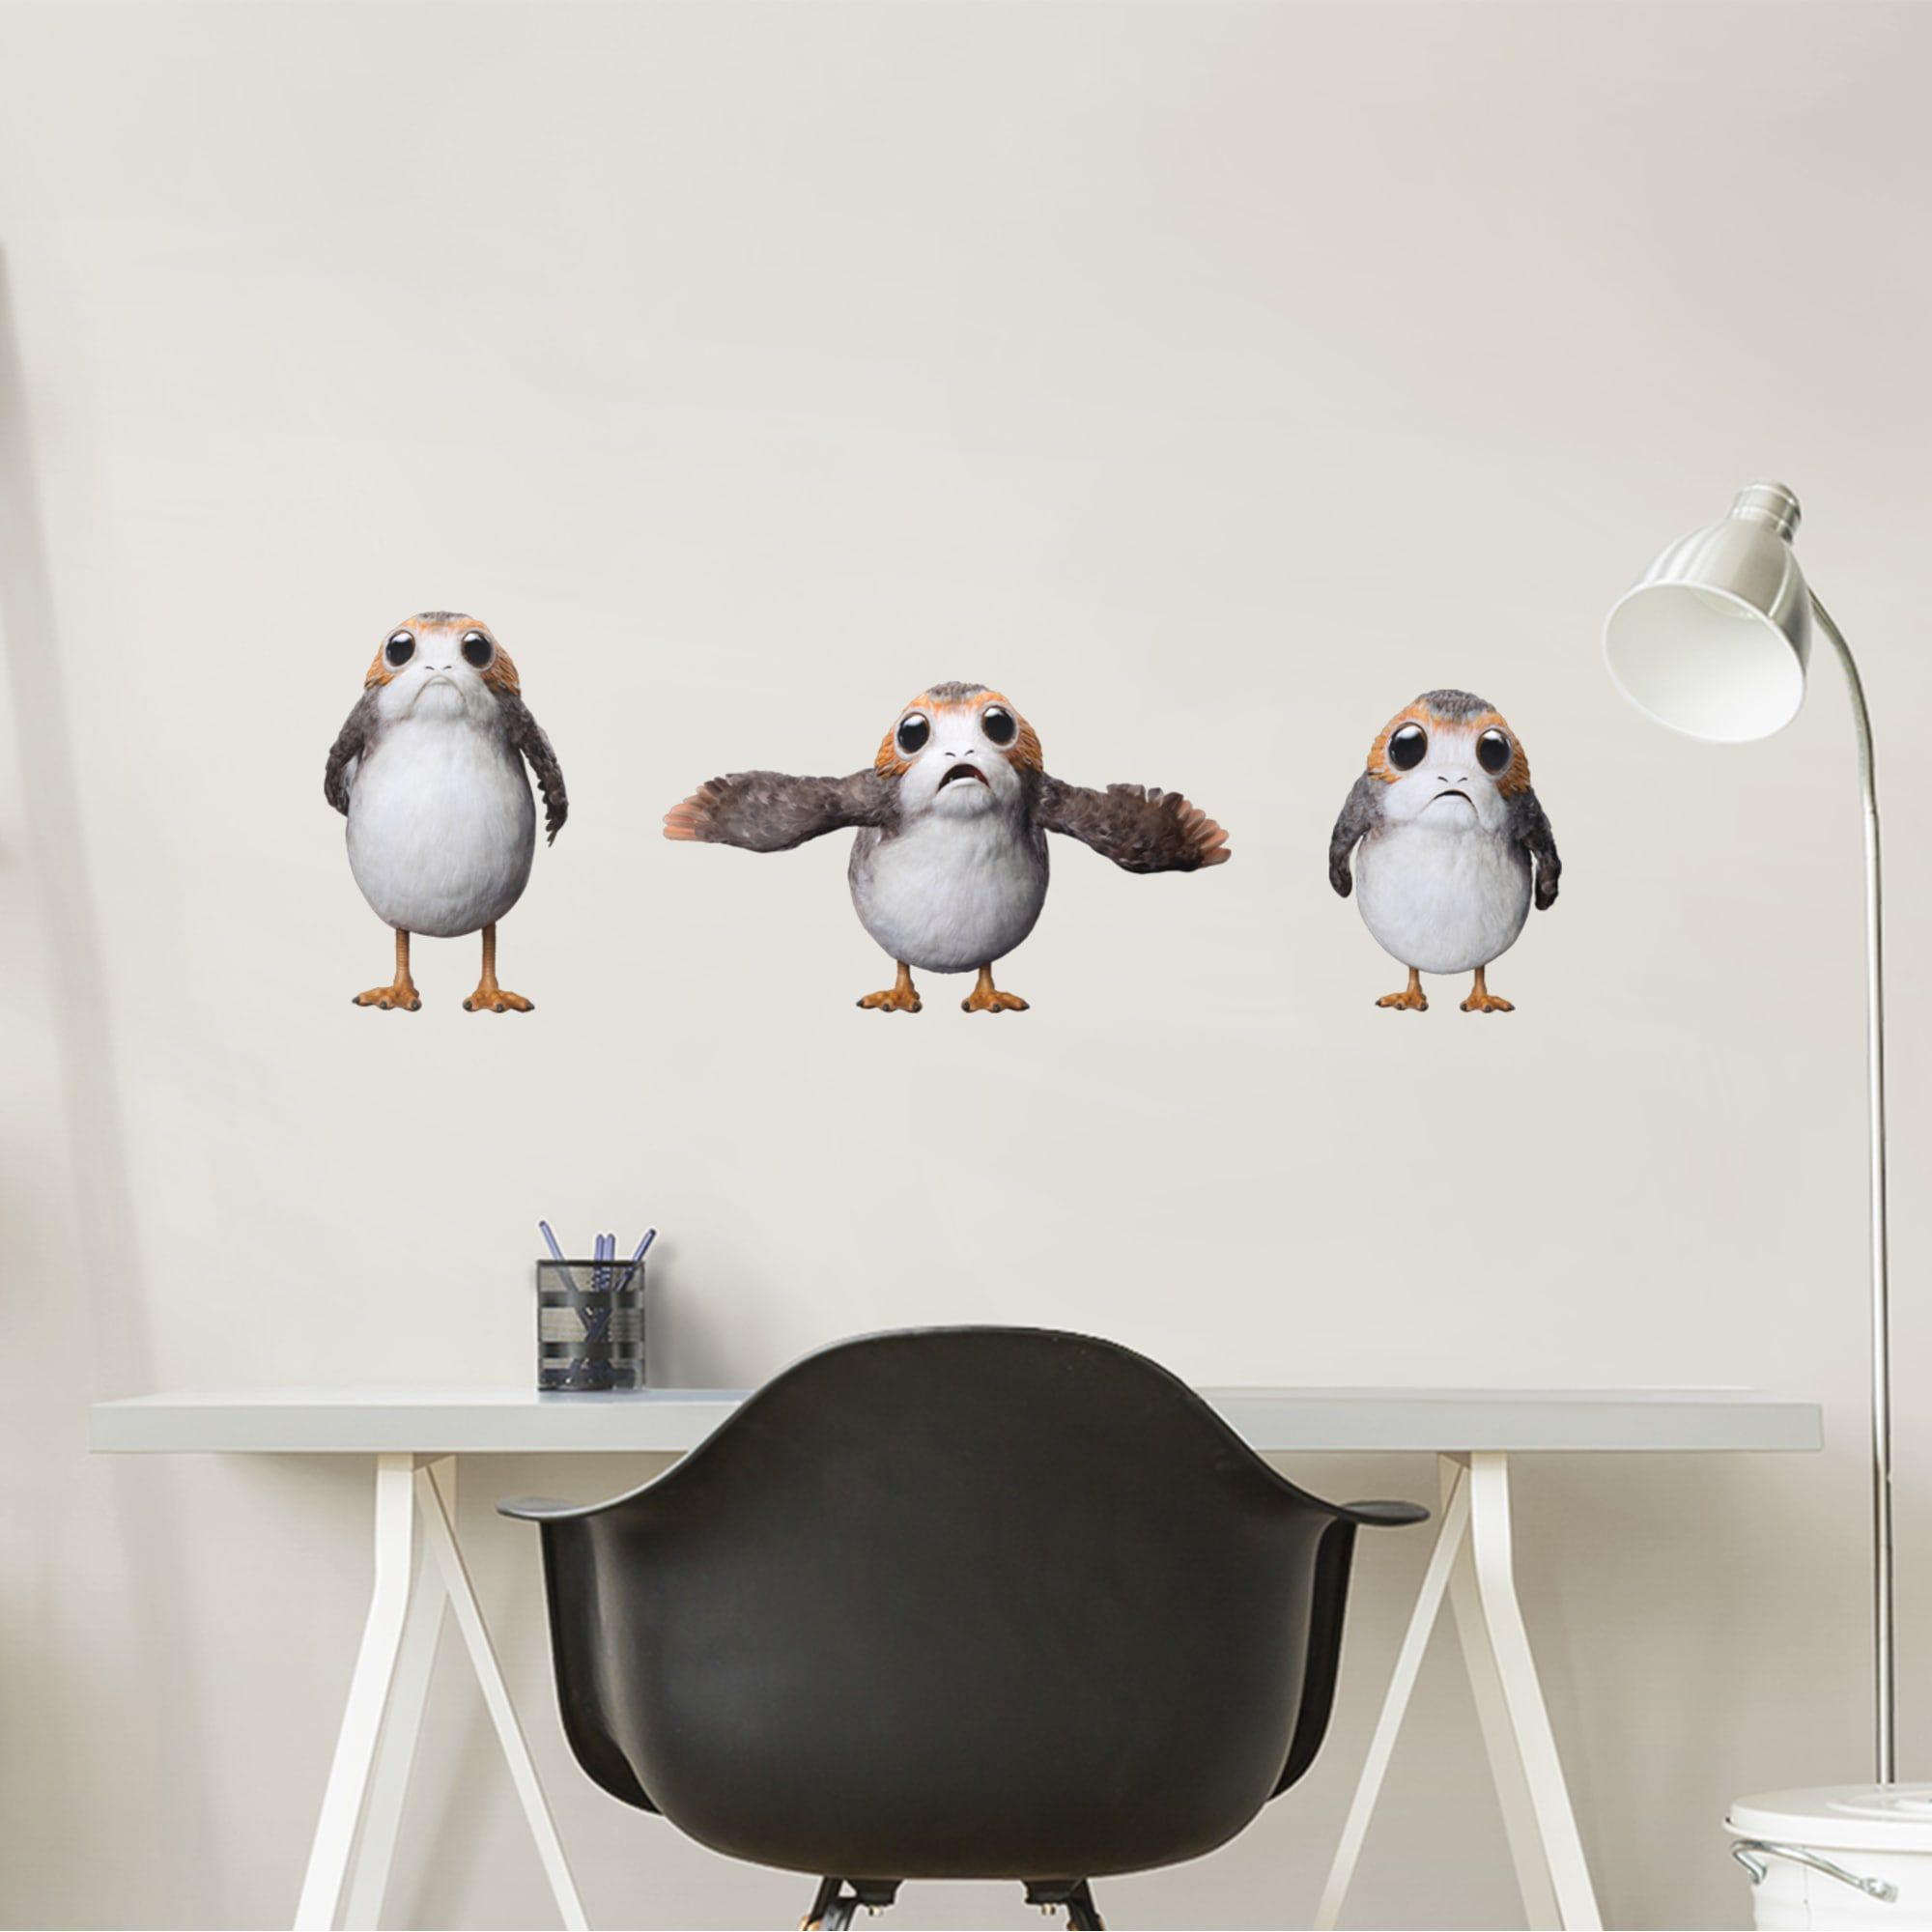 Porgs Collection Star Wars The Last Jedi X Large Officially Licensed Removable Wall Decals Removable Wall Decals Large Wall Decals Removable Wall